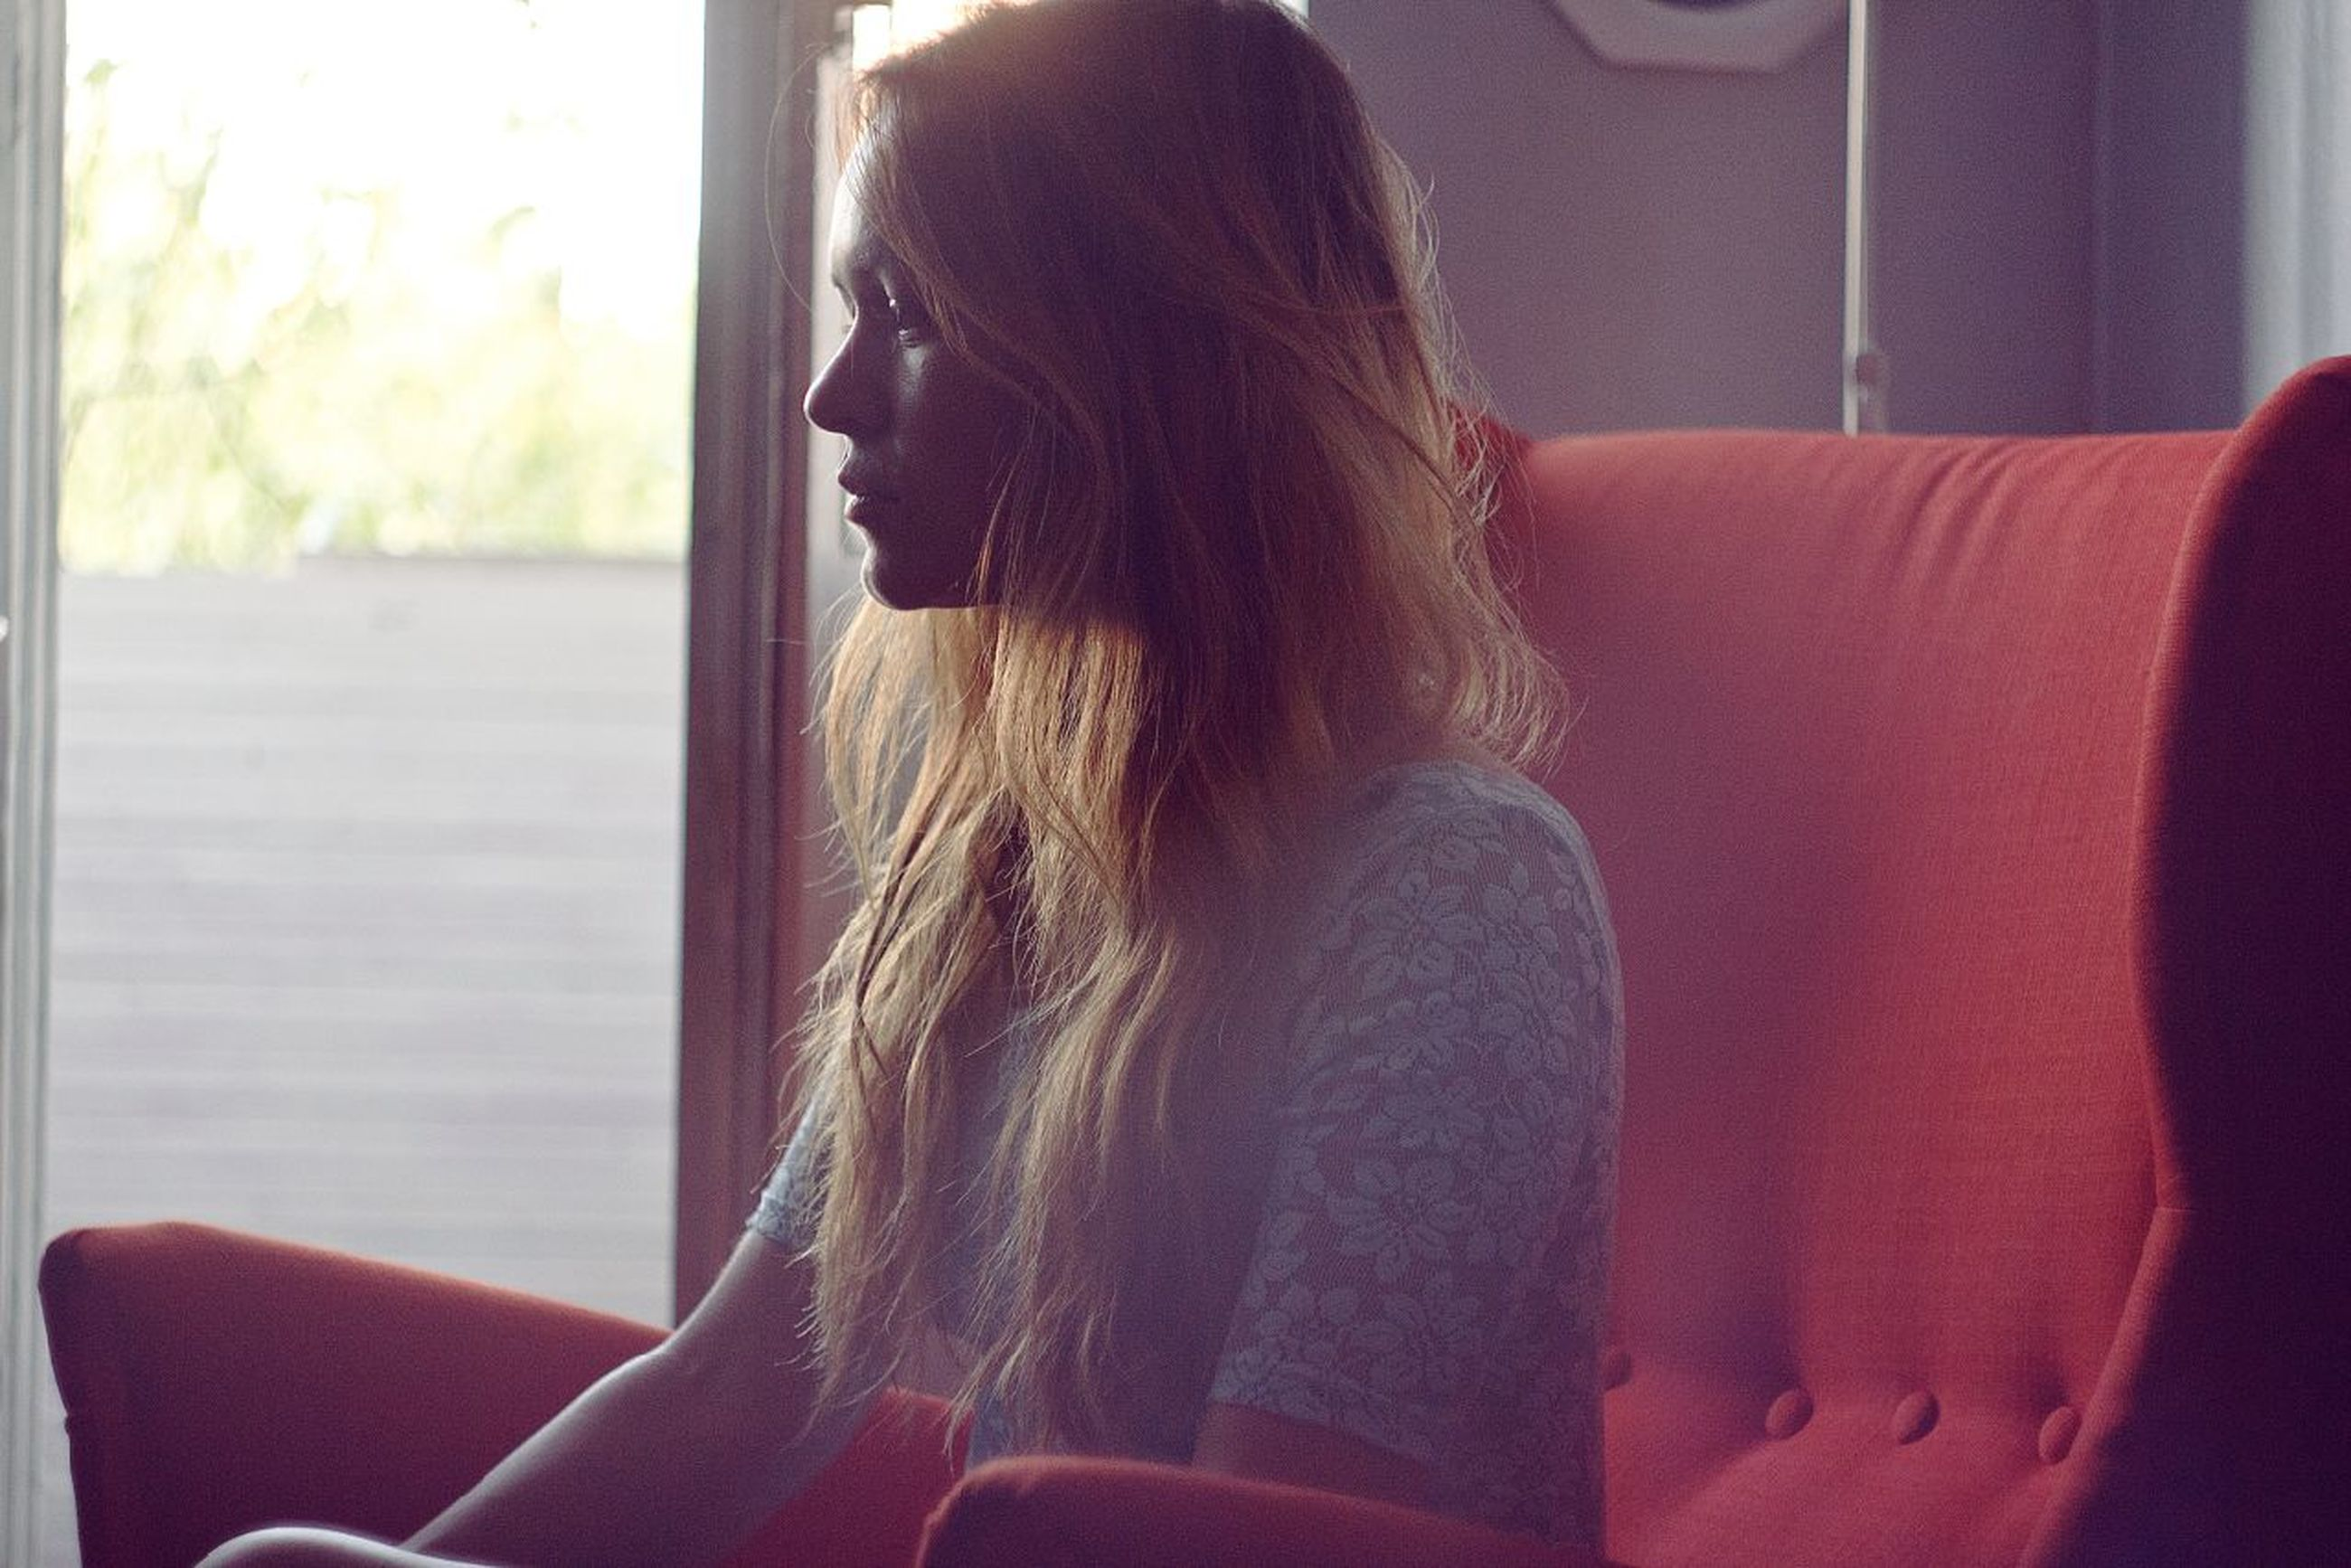 indoors, lifestyles, young adult, young women, long hair, leisure activity, person, waist up, window, home interior, casual clothing, headshot, sitting, side view, contemplation, rear view